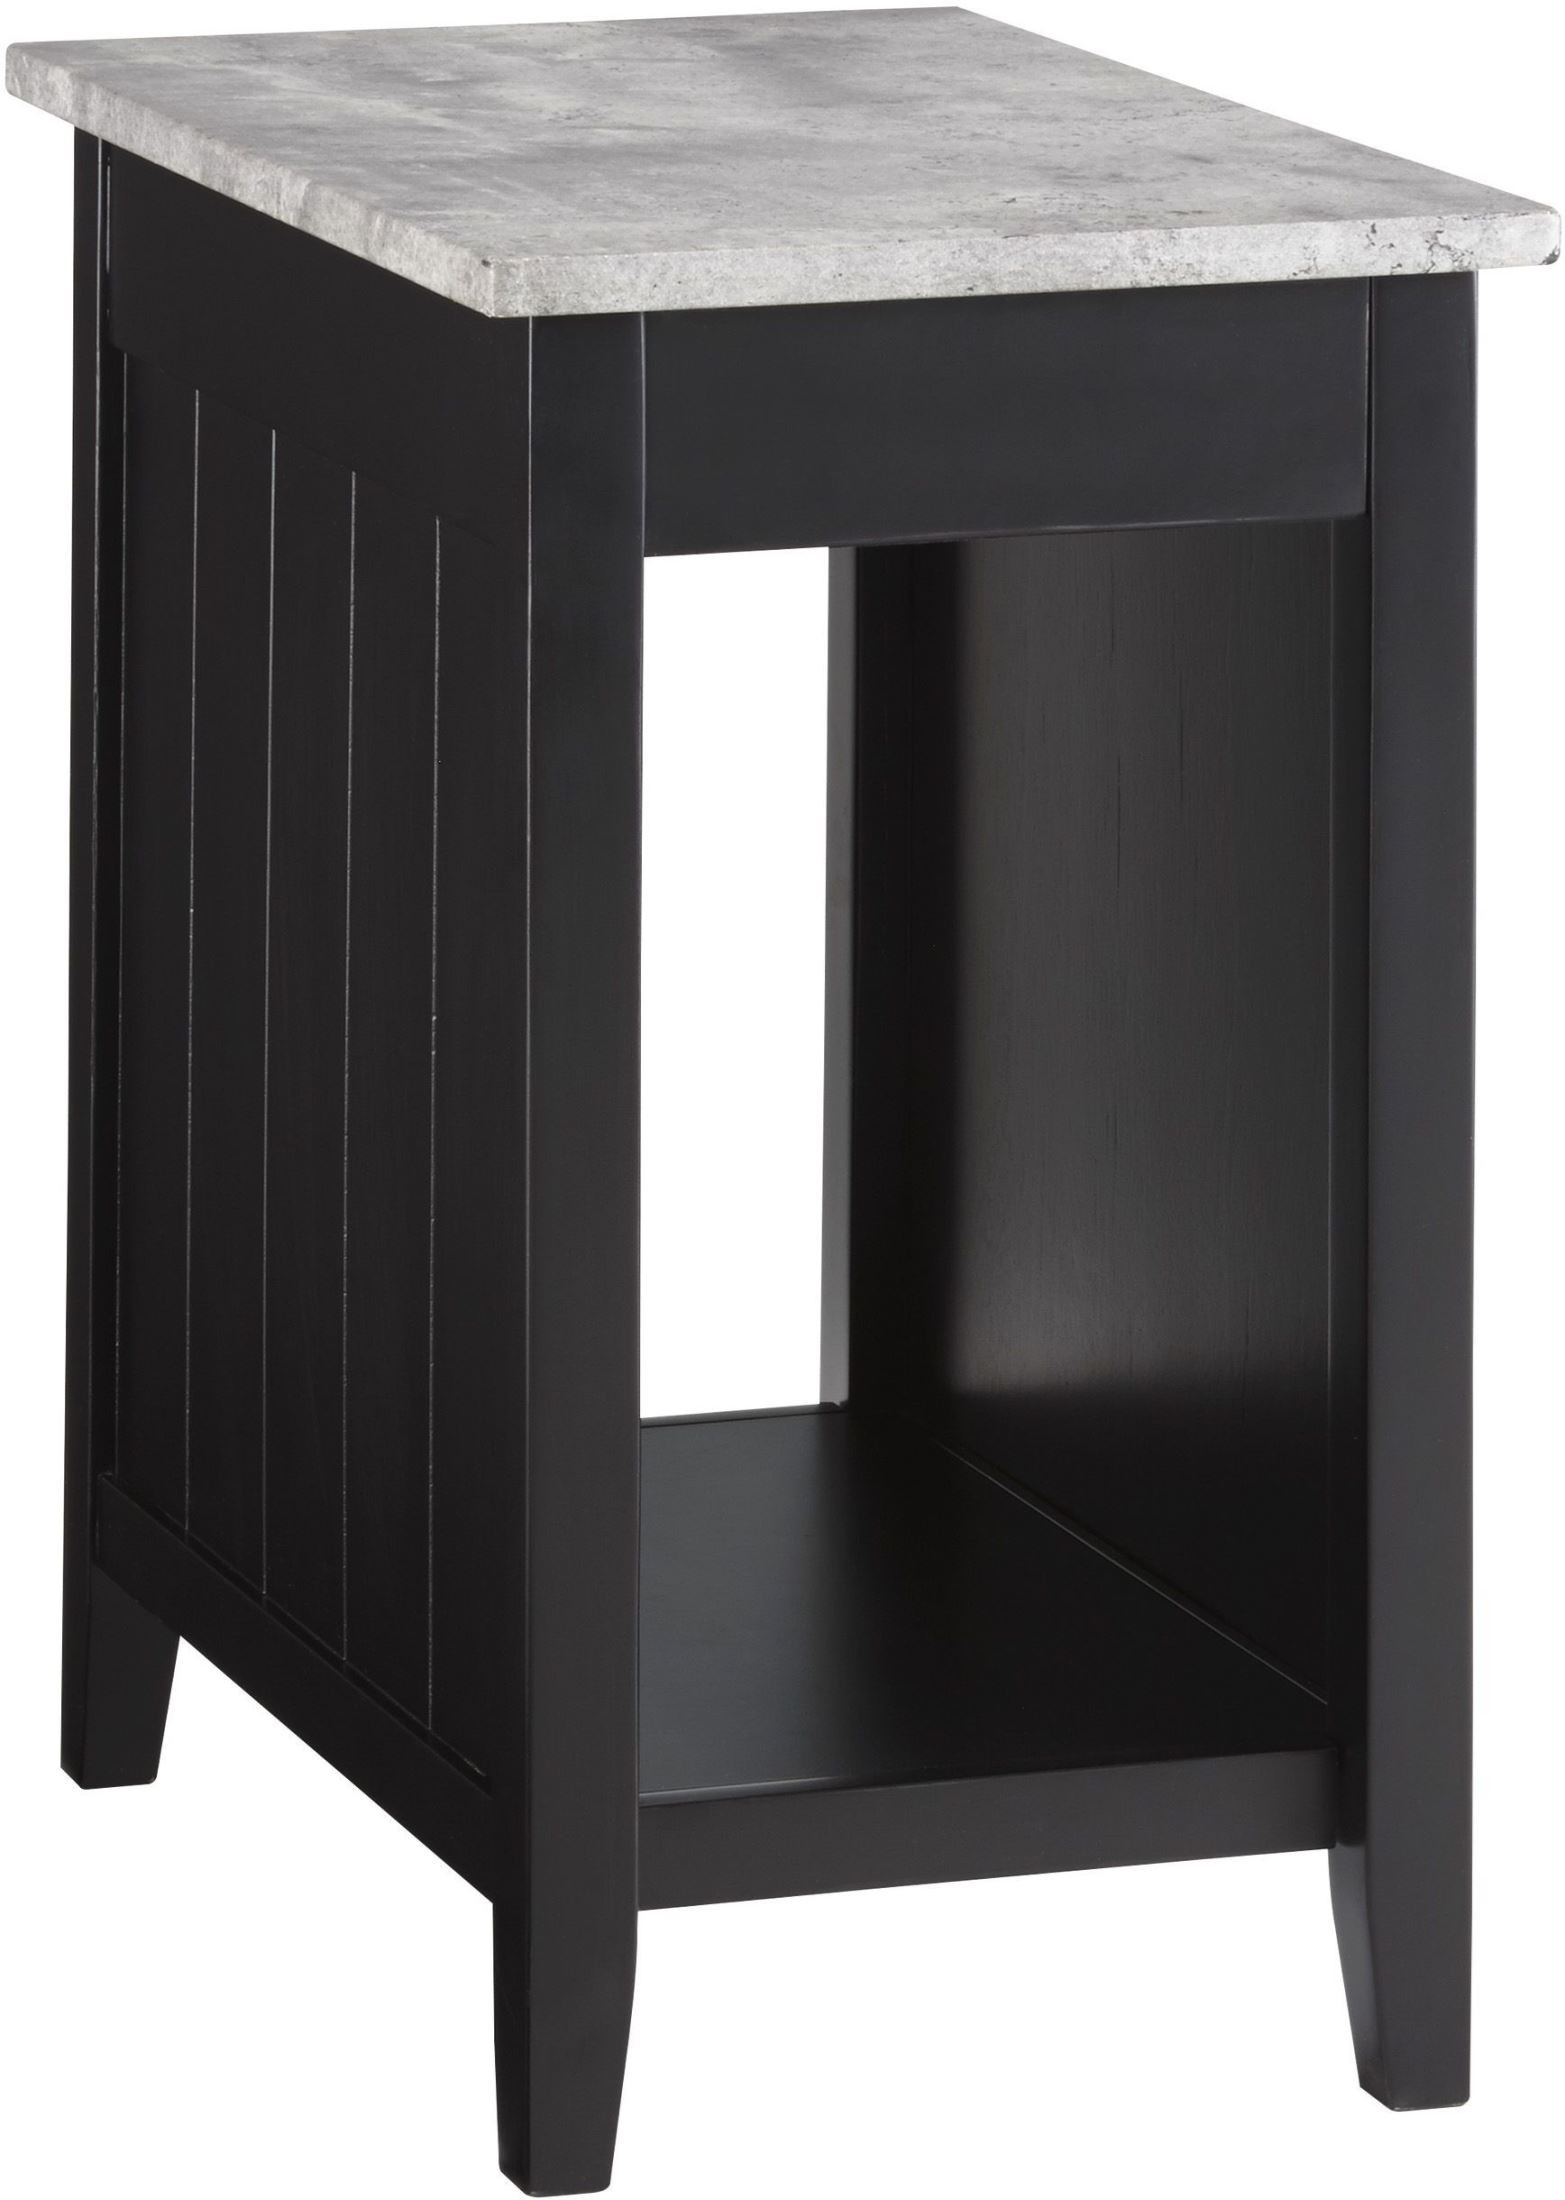 gray chair side table computer target diamenton black and end from ashley